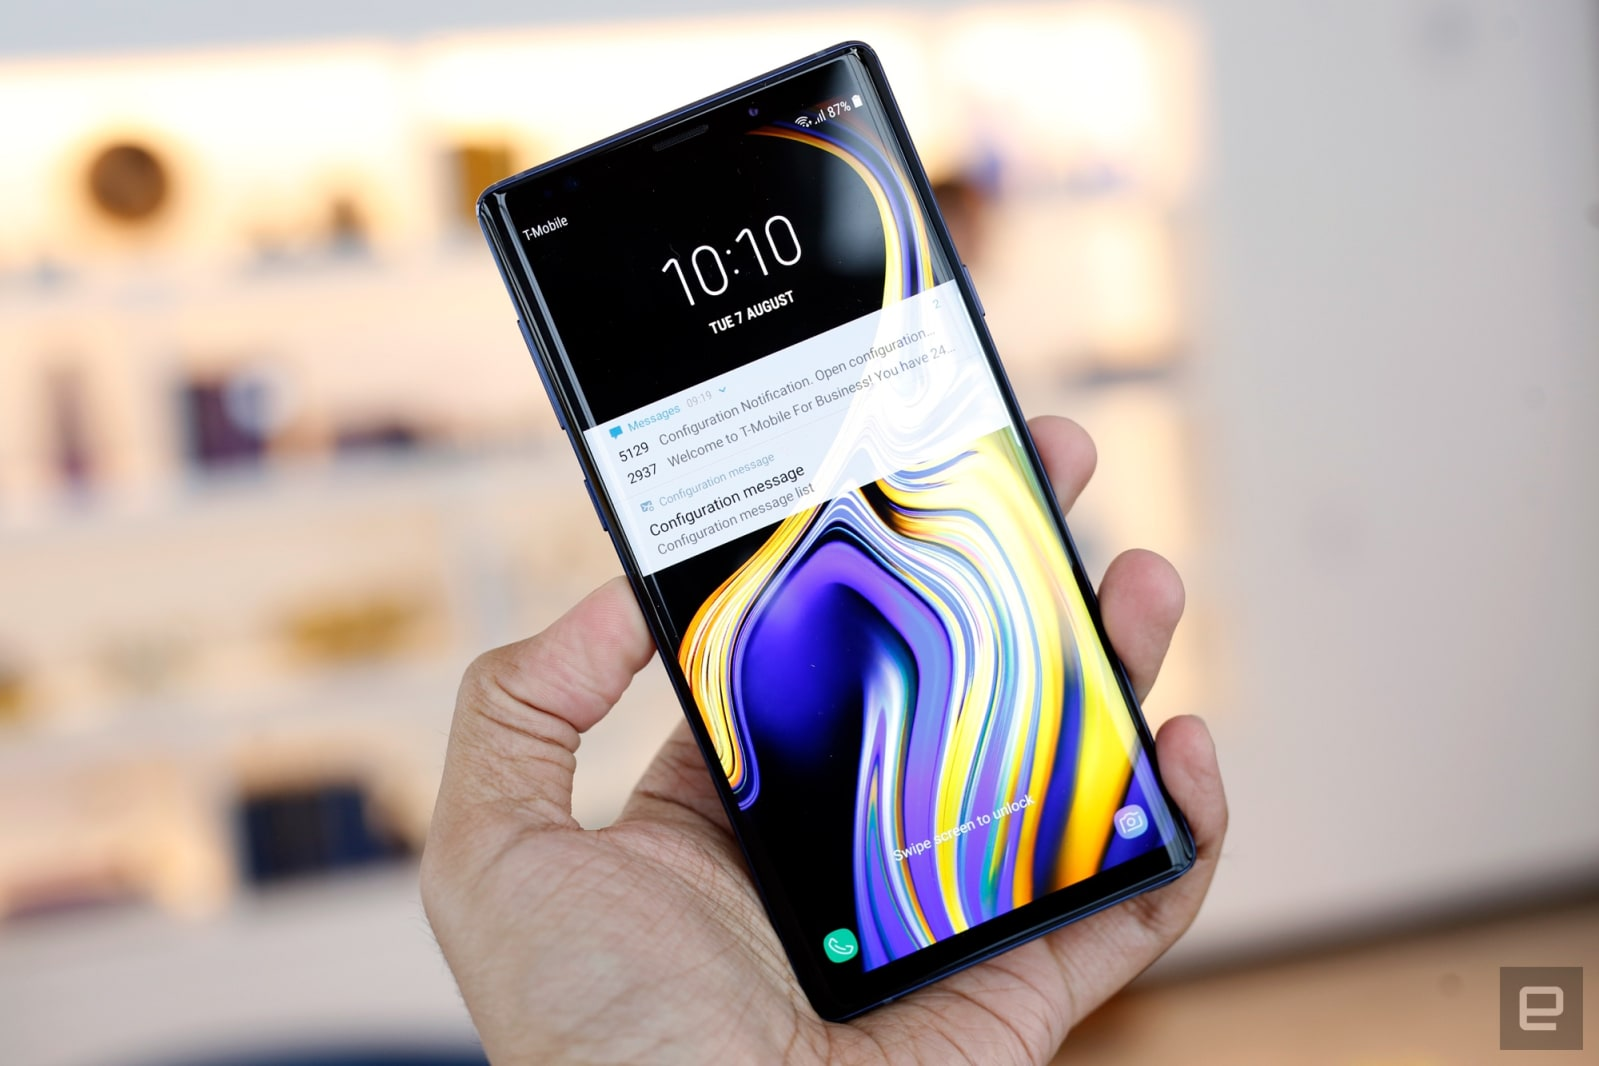 Samsung Galaxy Note 9 hands-on: All about the S Pen